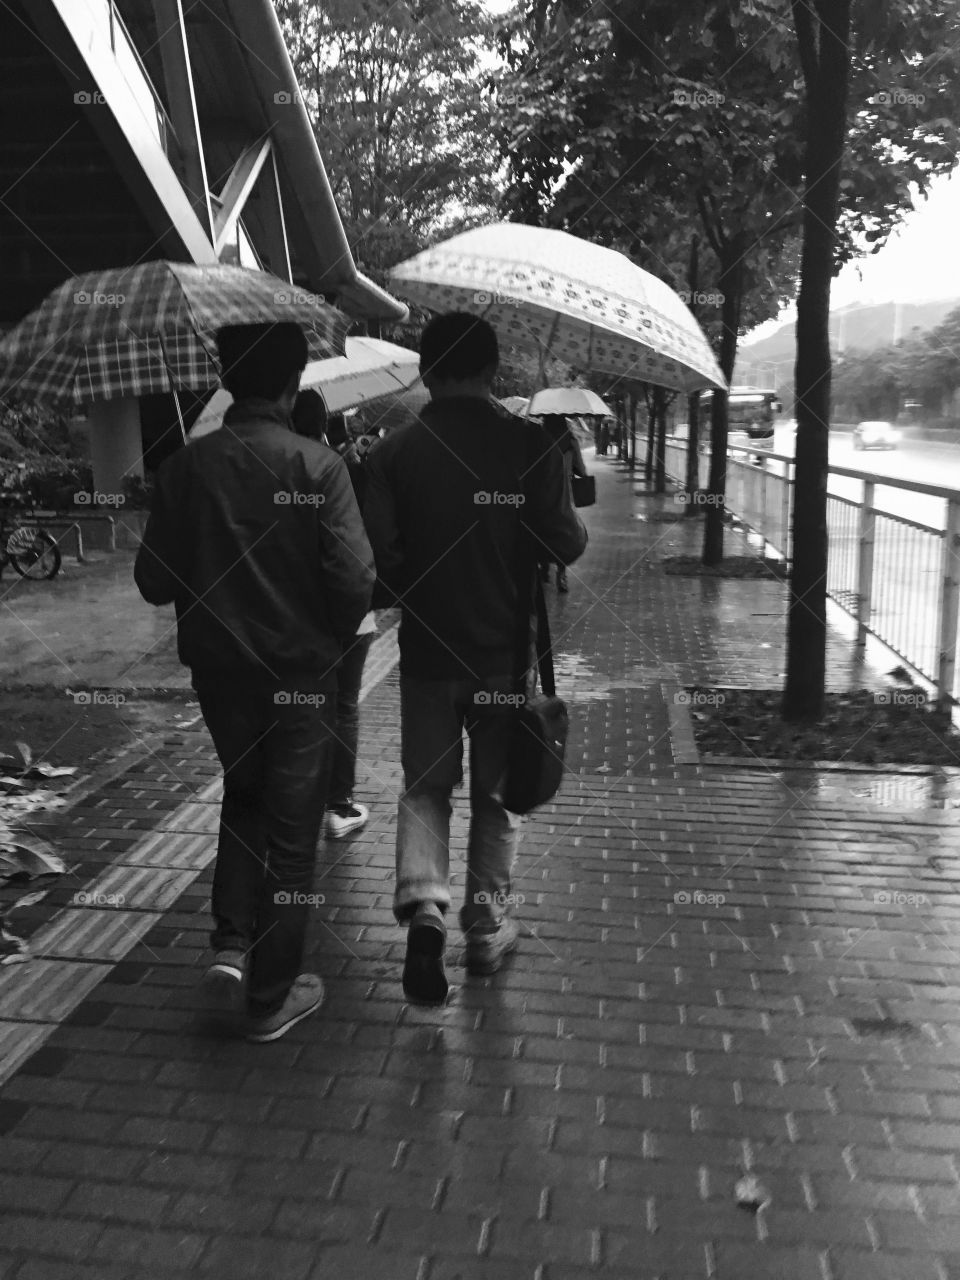 Commuters Walking with Umbrellas in the Rain - Shenzhen, China